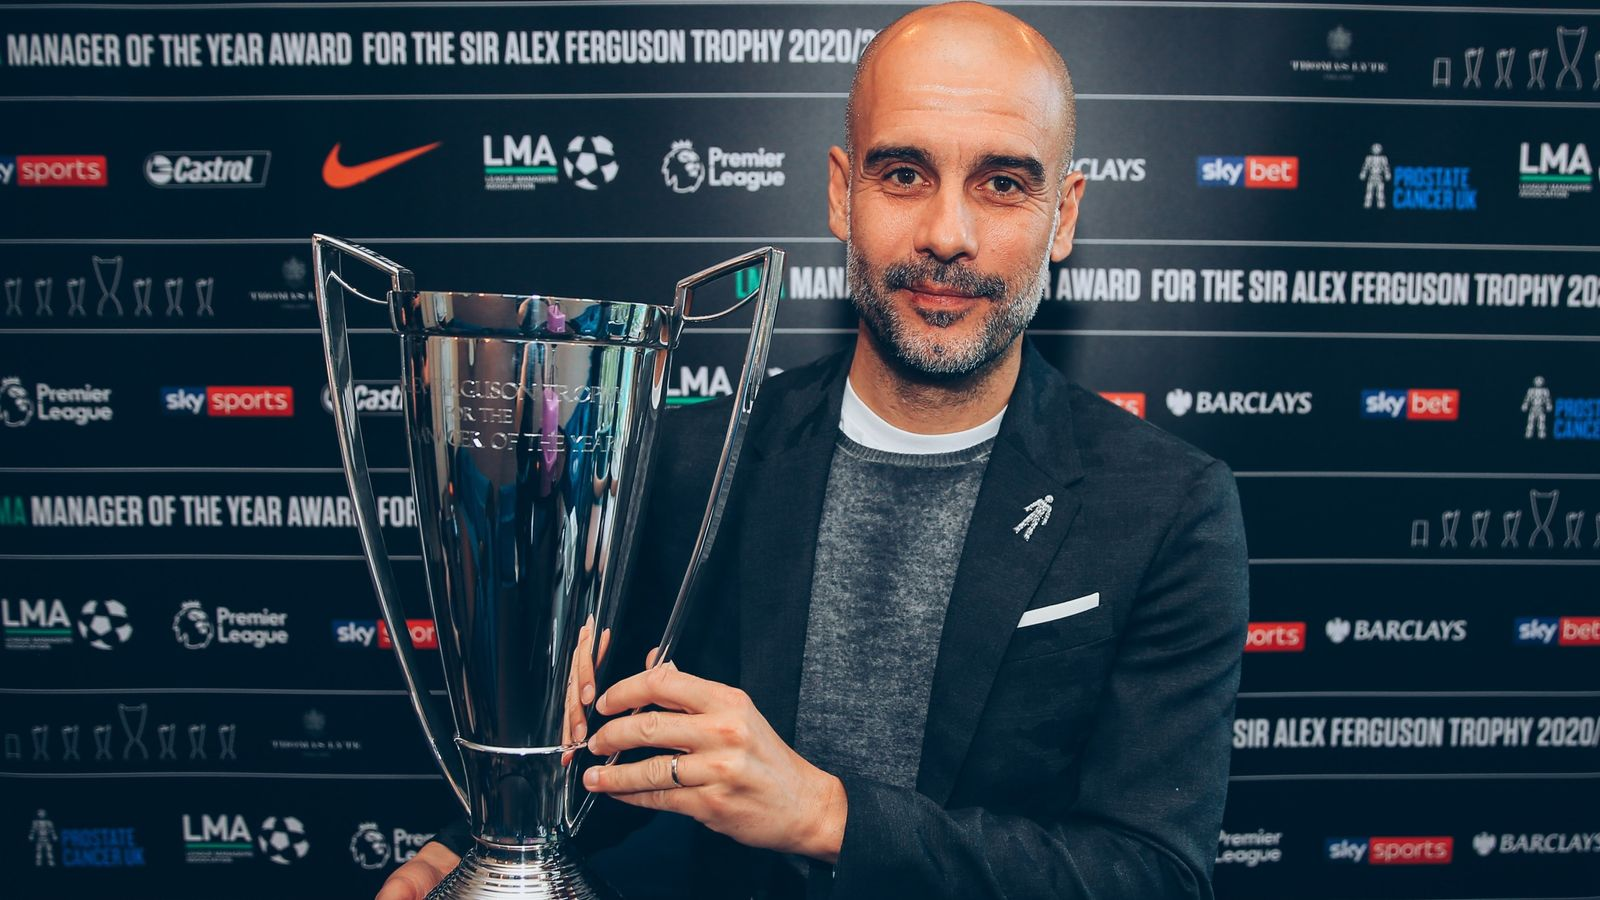 Pep Guardiola: Manchester City boss named LMA manager of the year